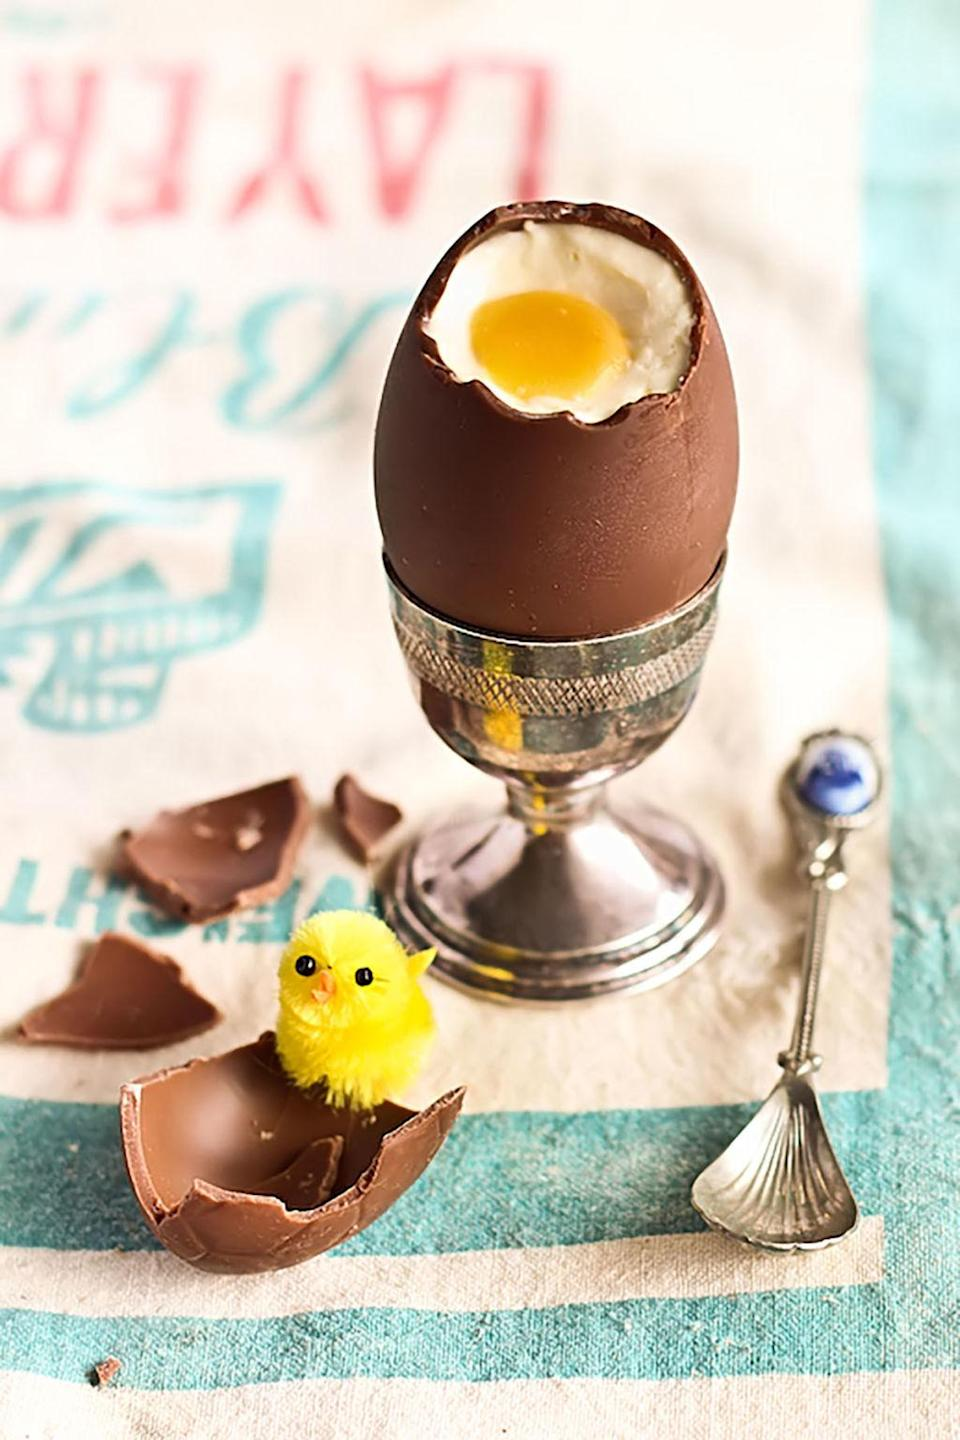 """<p><span>We're in awe of how realistic this treat is. Don't worry-only cheesecake and passionfruit sauce make up the filling of this delicious Easter egg.</span></p><p><strong>Get the recipe at <a href=""""http://www.raspberricupcakes.com/2012/04/cheesecake-filled-chocolate-easter-eggs.html"""" rel=""""nofollow noopener"""" target=""""_blank"""" data-ylk=""""slk:Raspberri Cupcakes"""" class=""""link rapid-noclick-resp"""">Raspberri Cupcakes</a>. </strong></p>"""